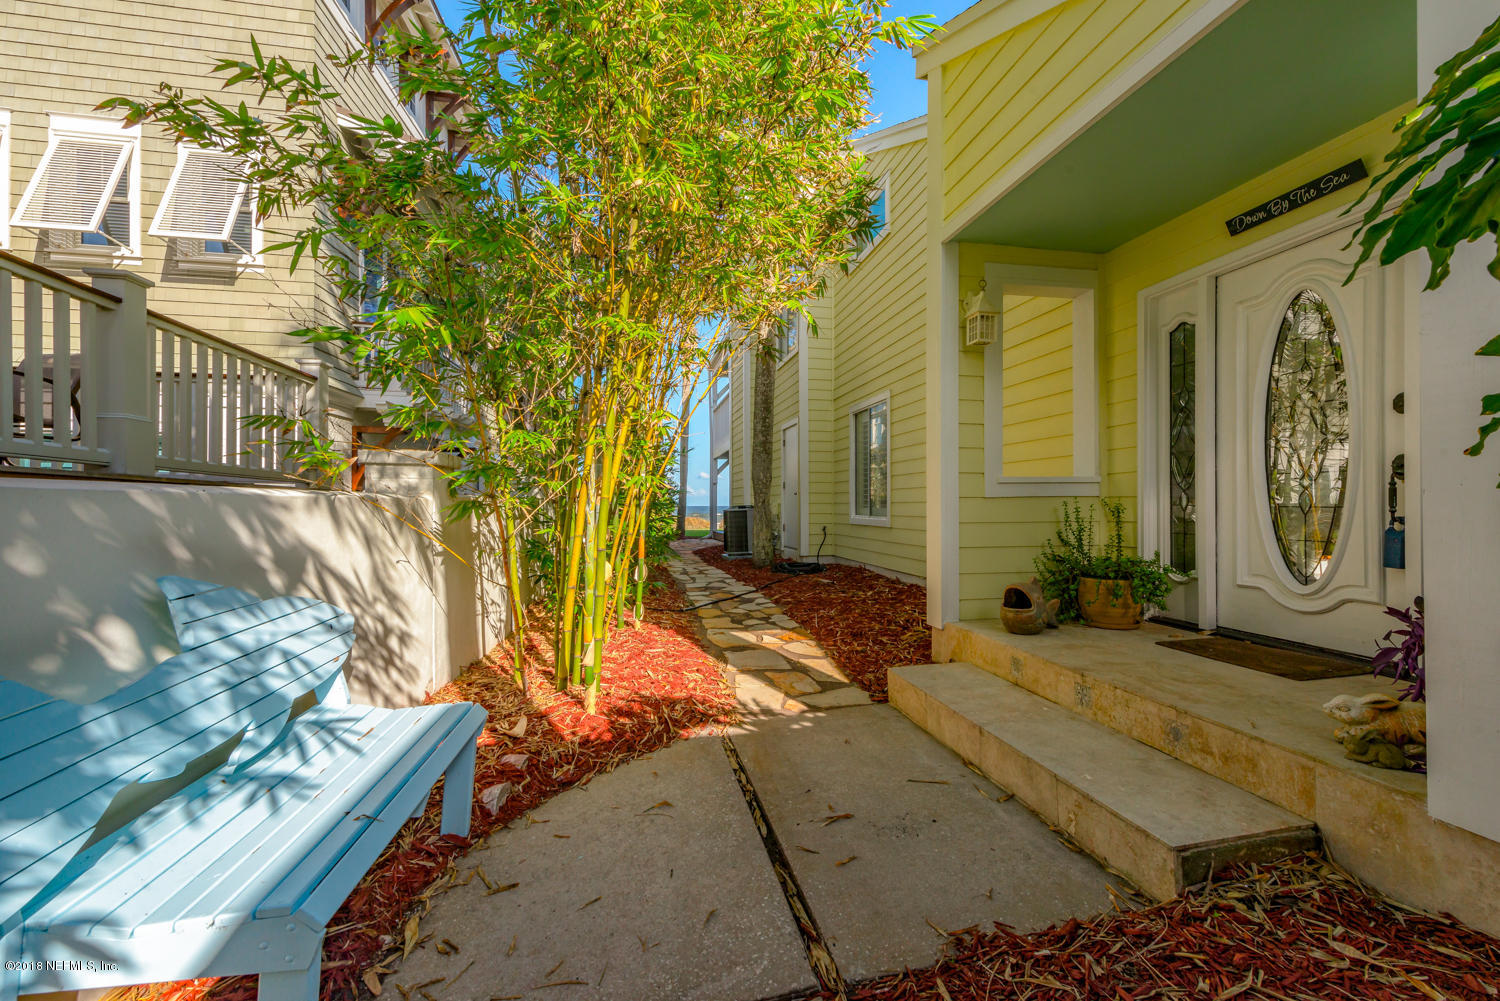 1745 BEACH, ATLANTIC BEACH, FLORIDA 32233, 4 Bedrooms Bedrooms, ,2 BathroomsBathrooms,Residential - single family,For sale,BEACH,960907